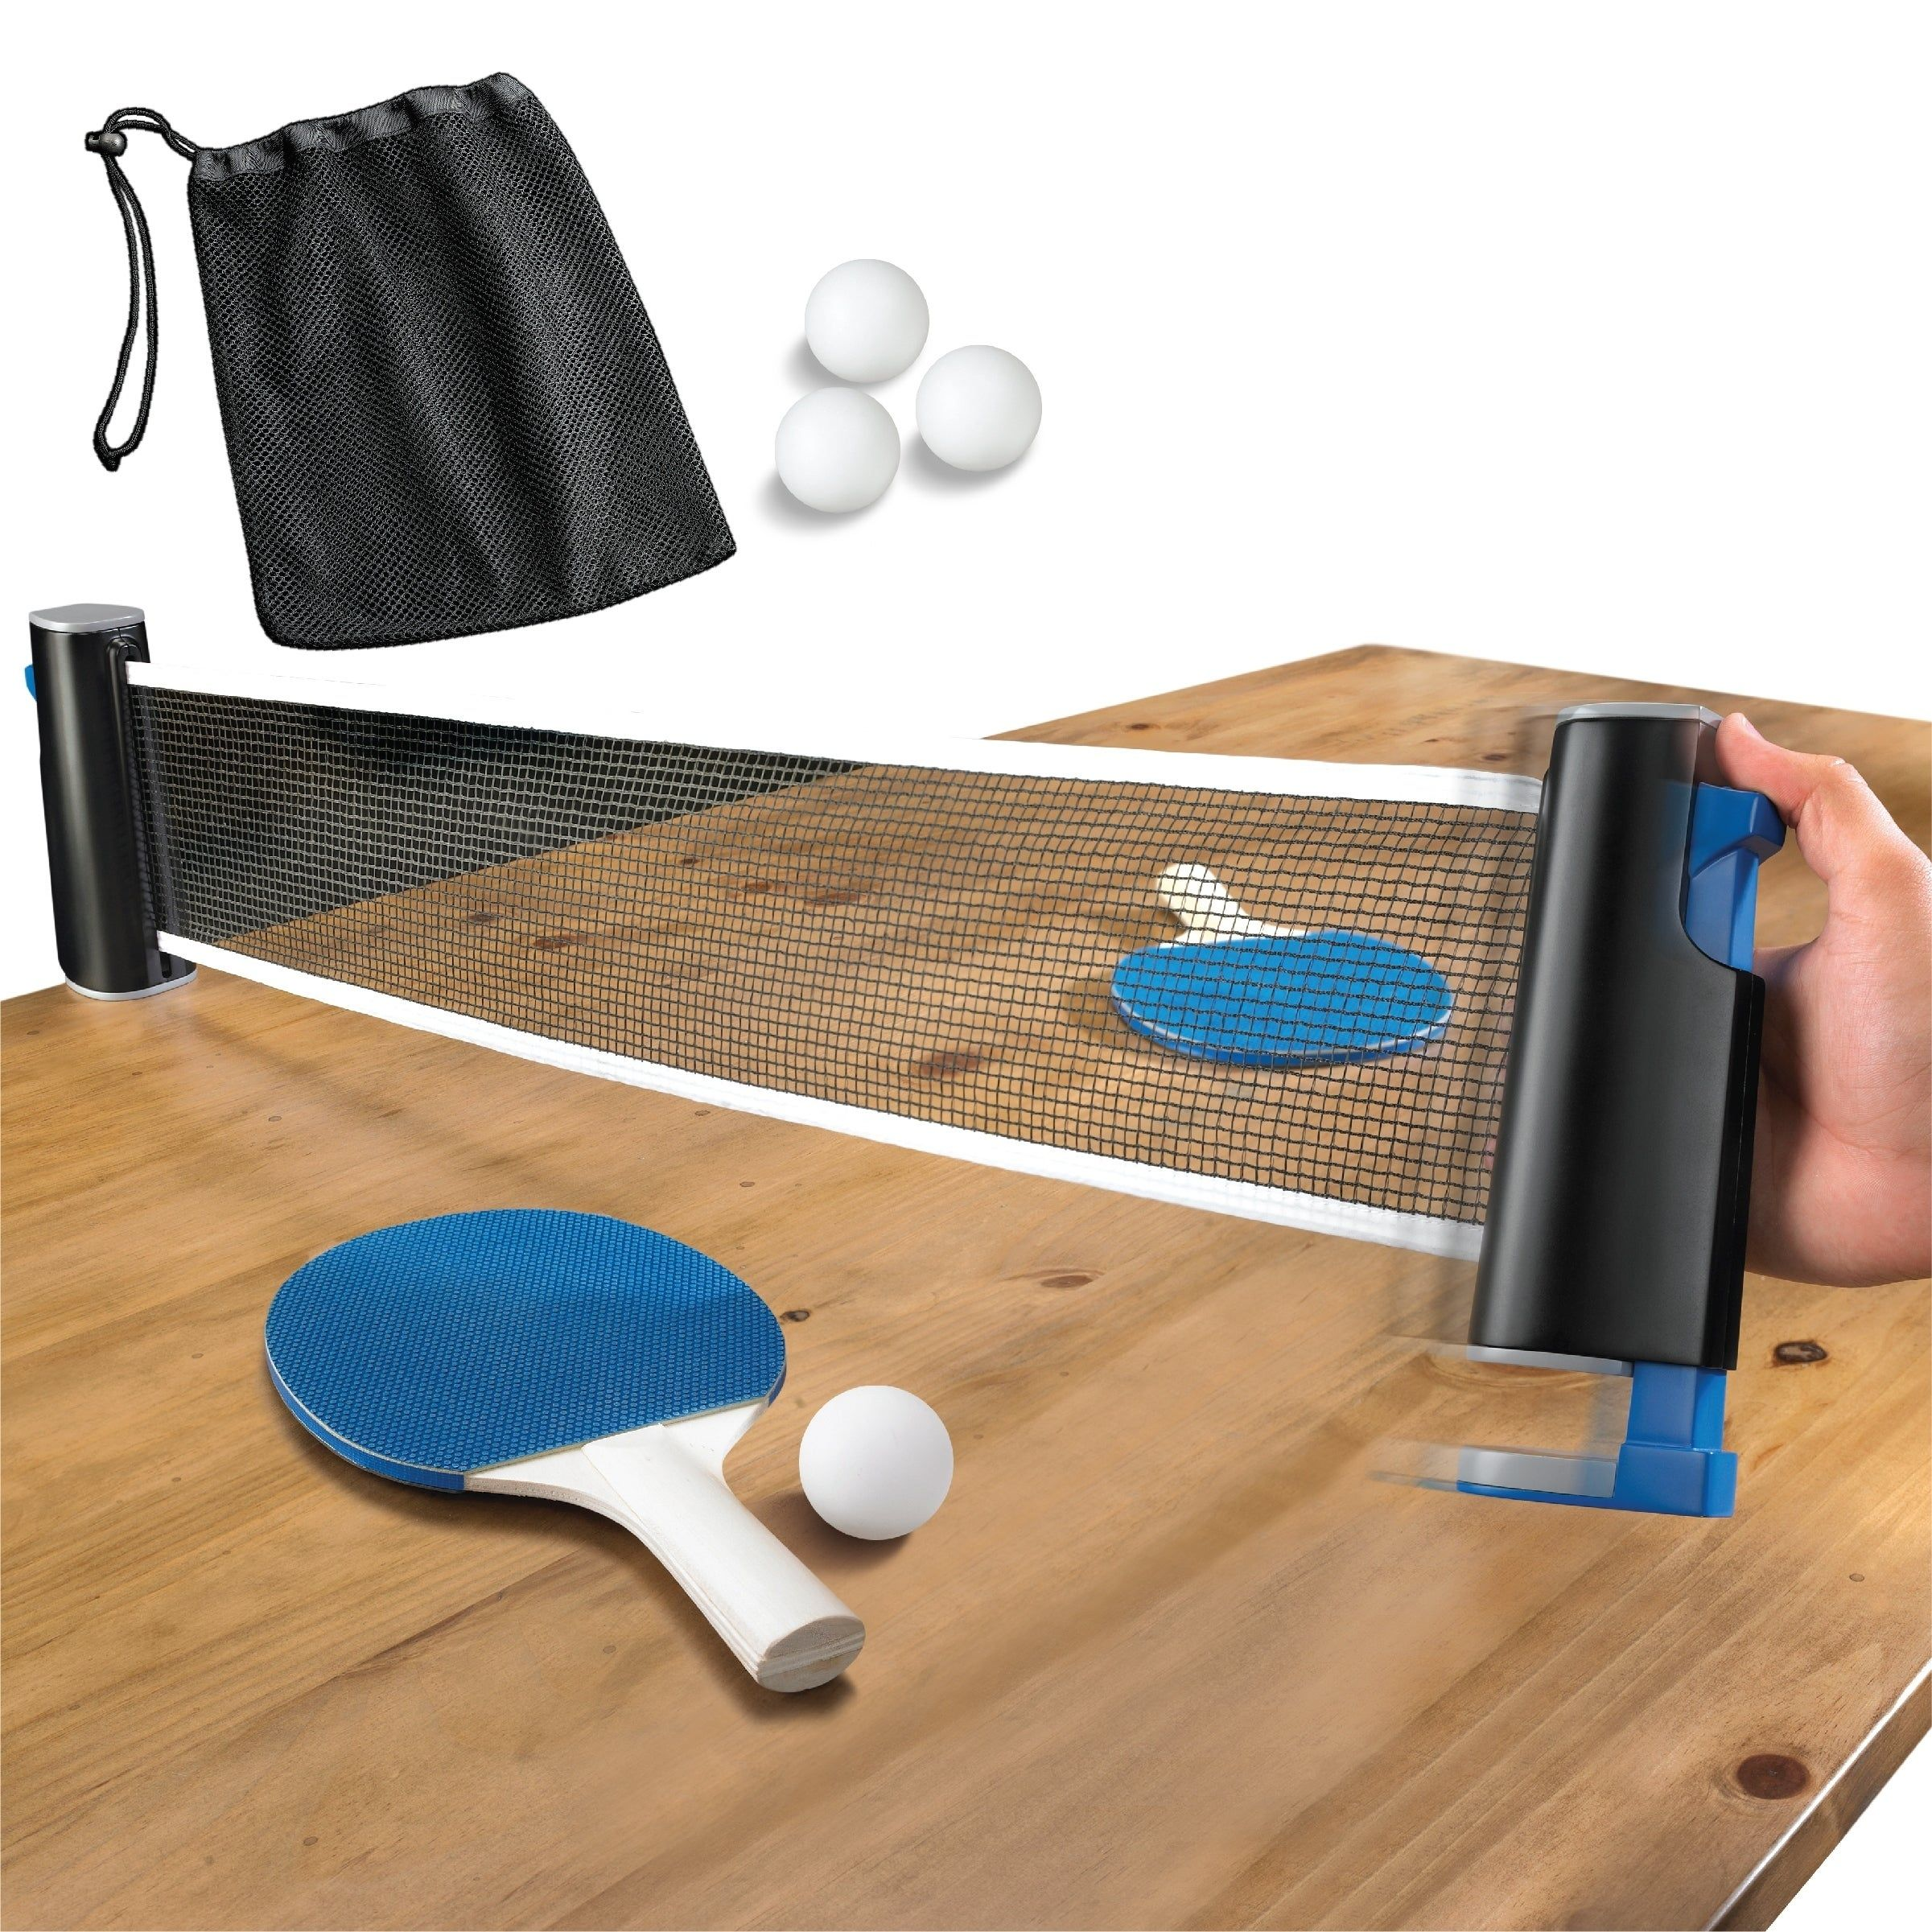 Game Table Top Tennis Retractable Go Anywhere, Blue in